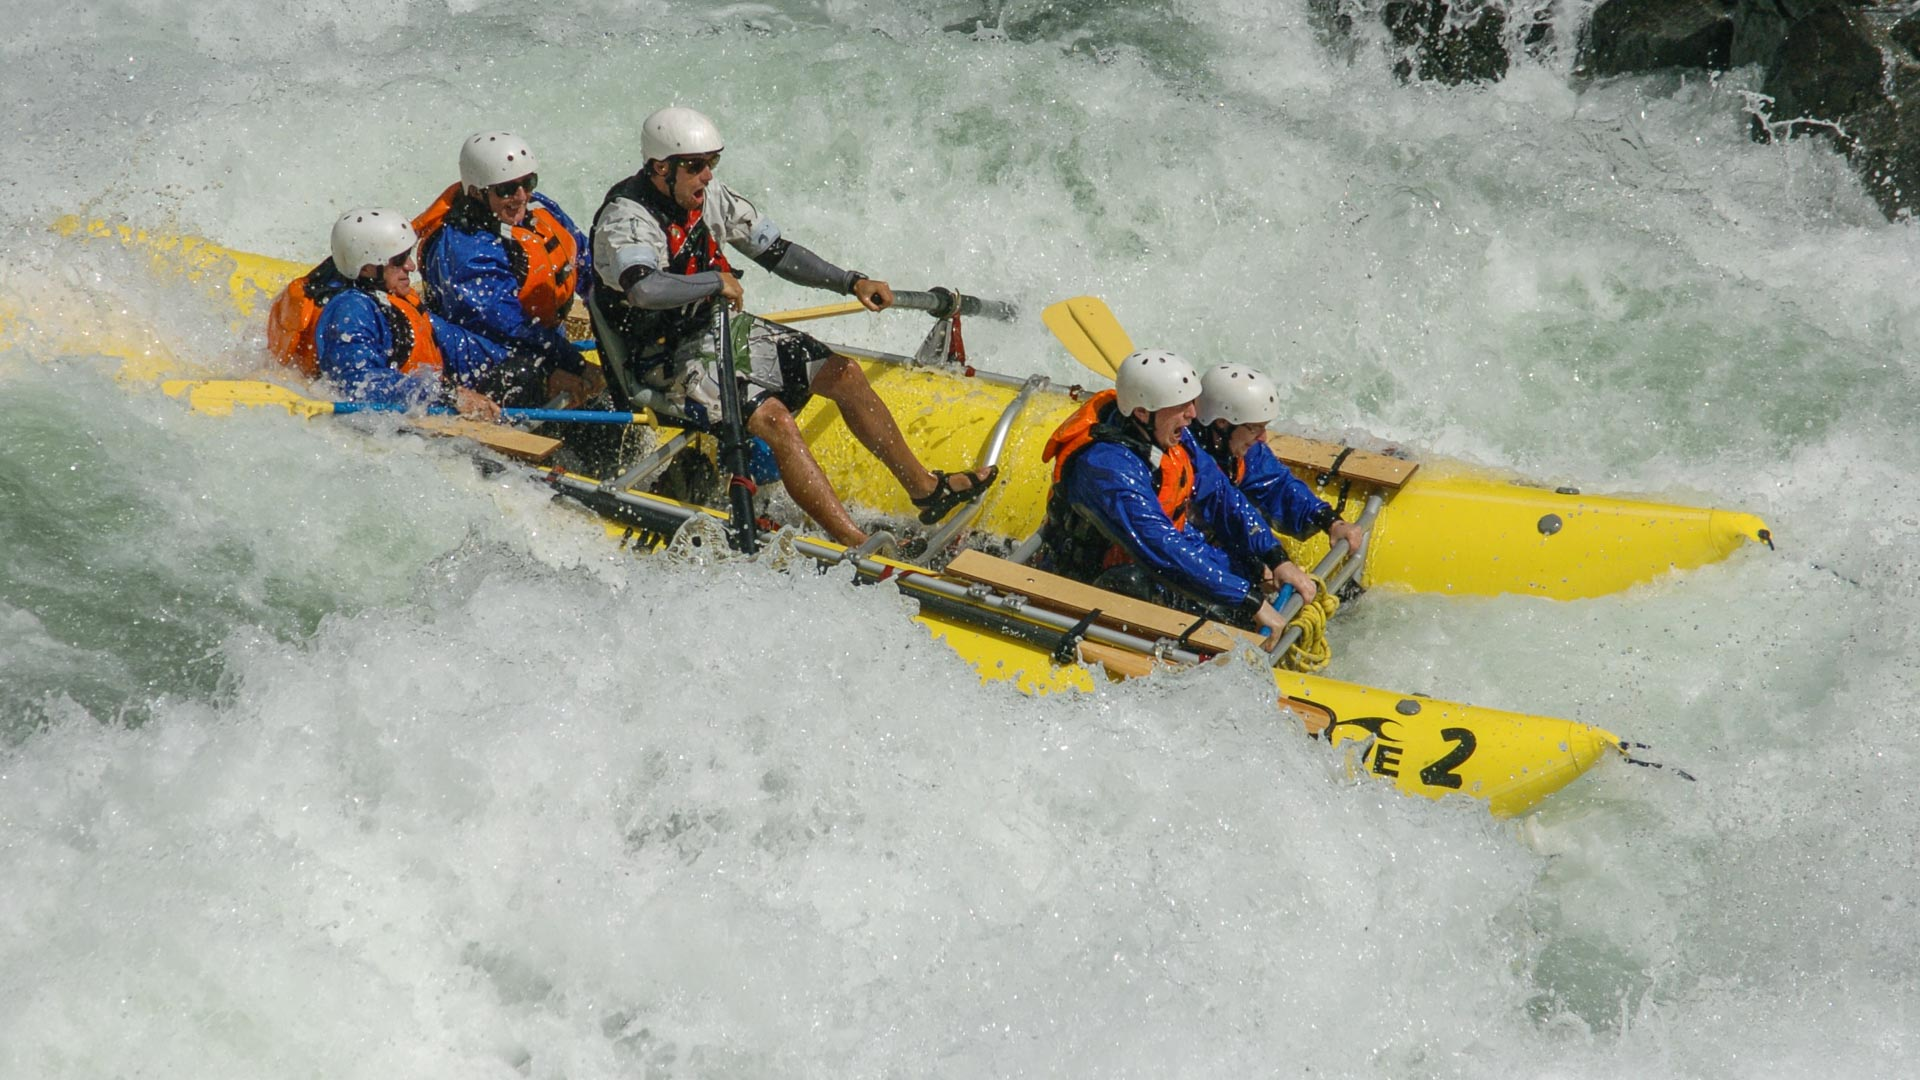 Whitewater rafting in the BC interior